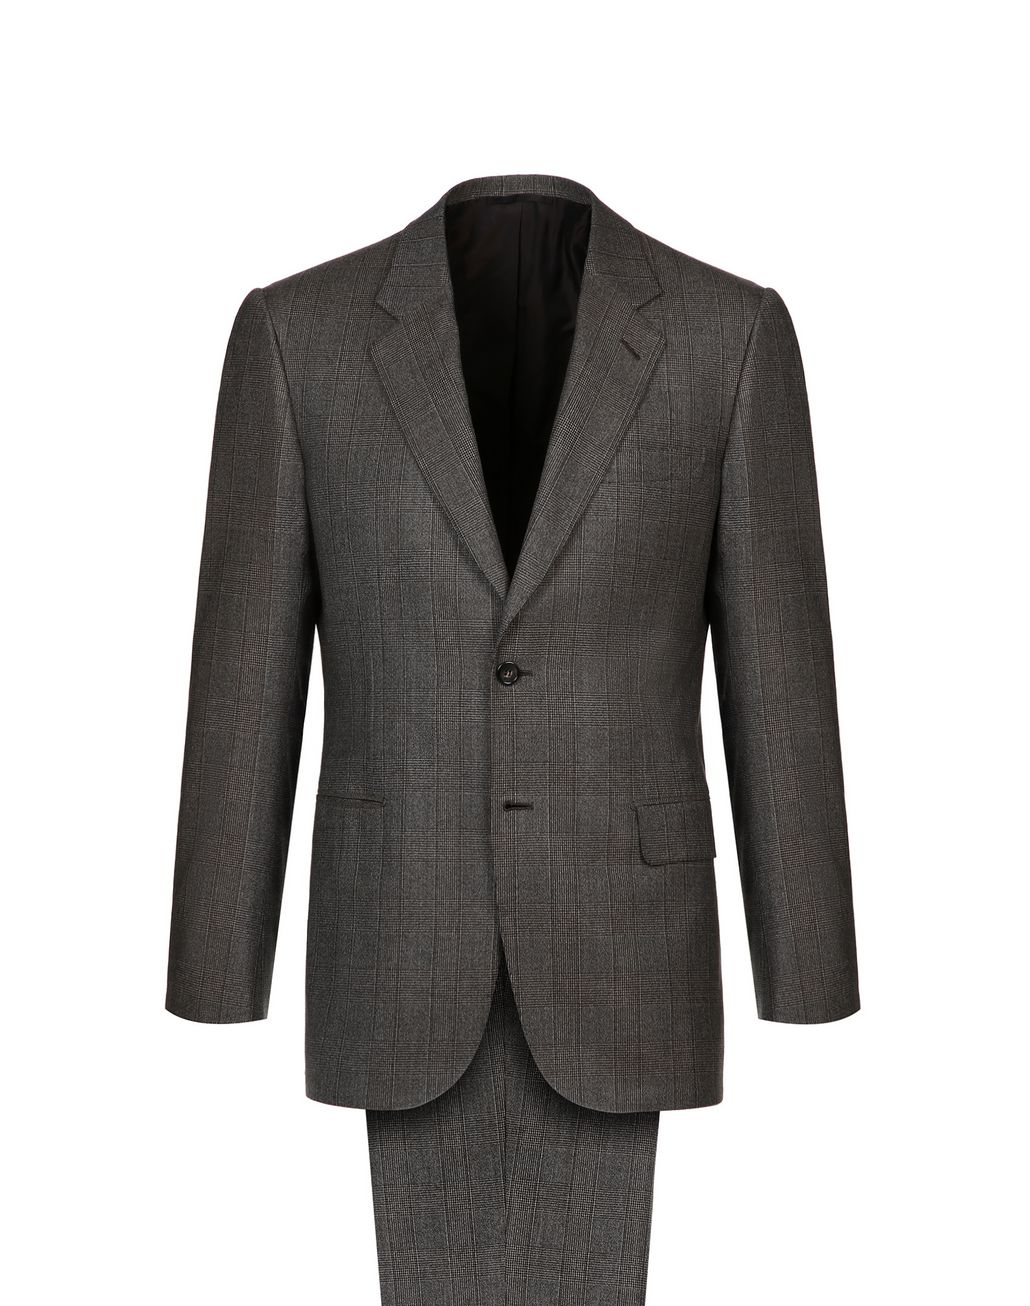 BRIONI 浅褐色格纹 Parioli 西服套装   Suits & Jackets [*** pickupInStoreShippingNotGuaranteed_info ***] f